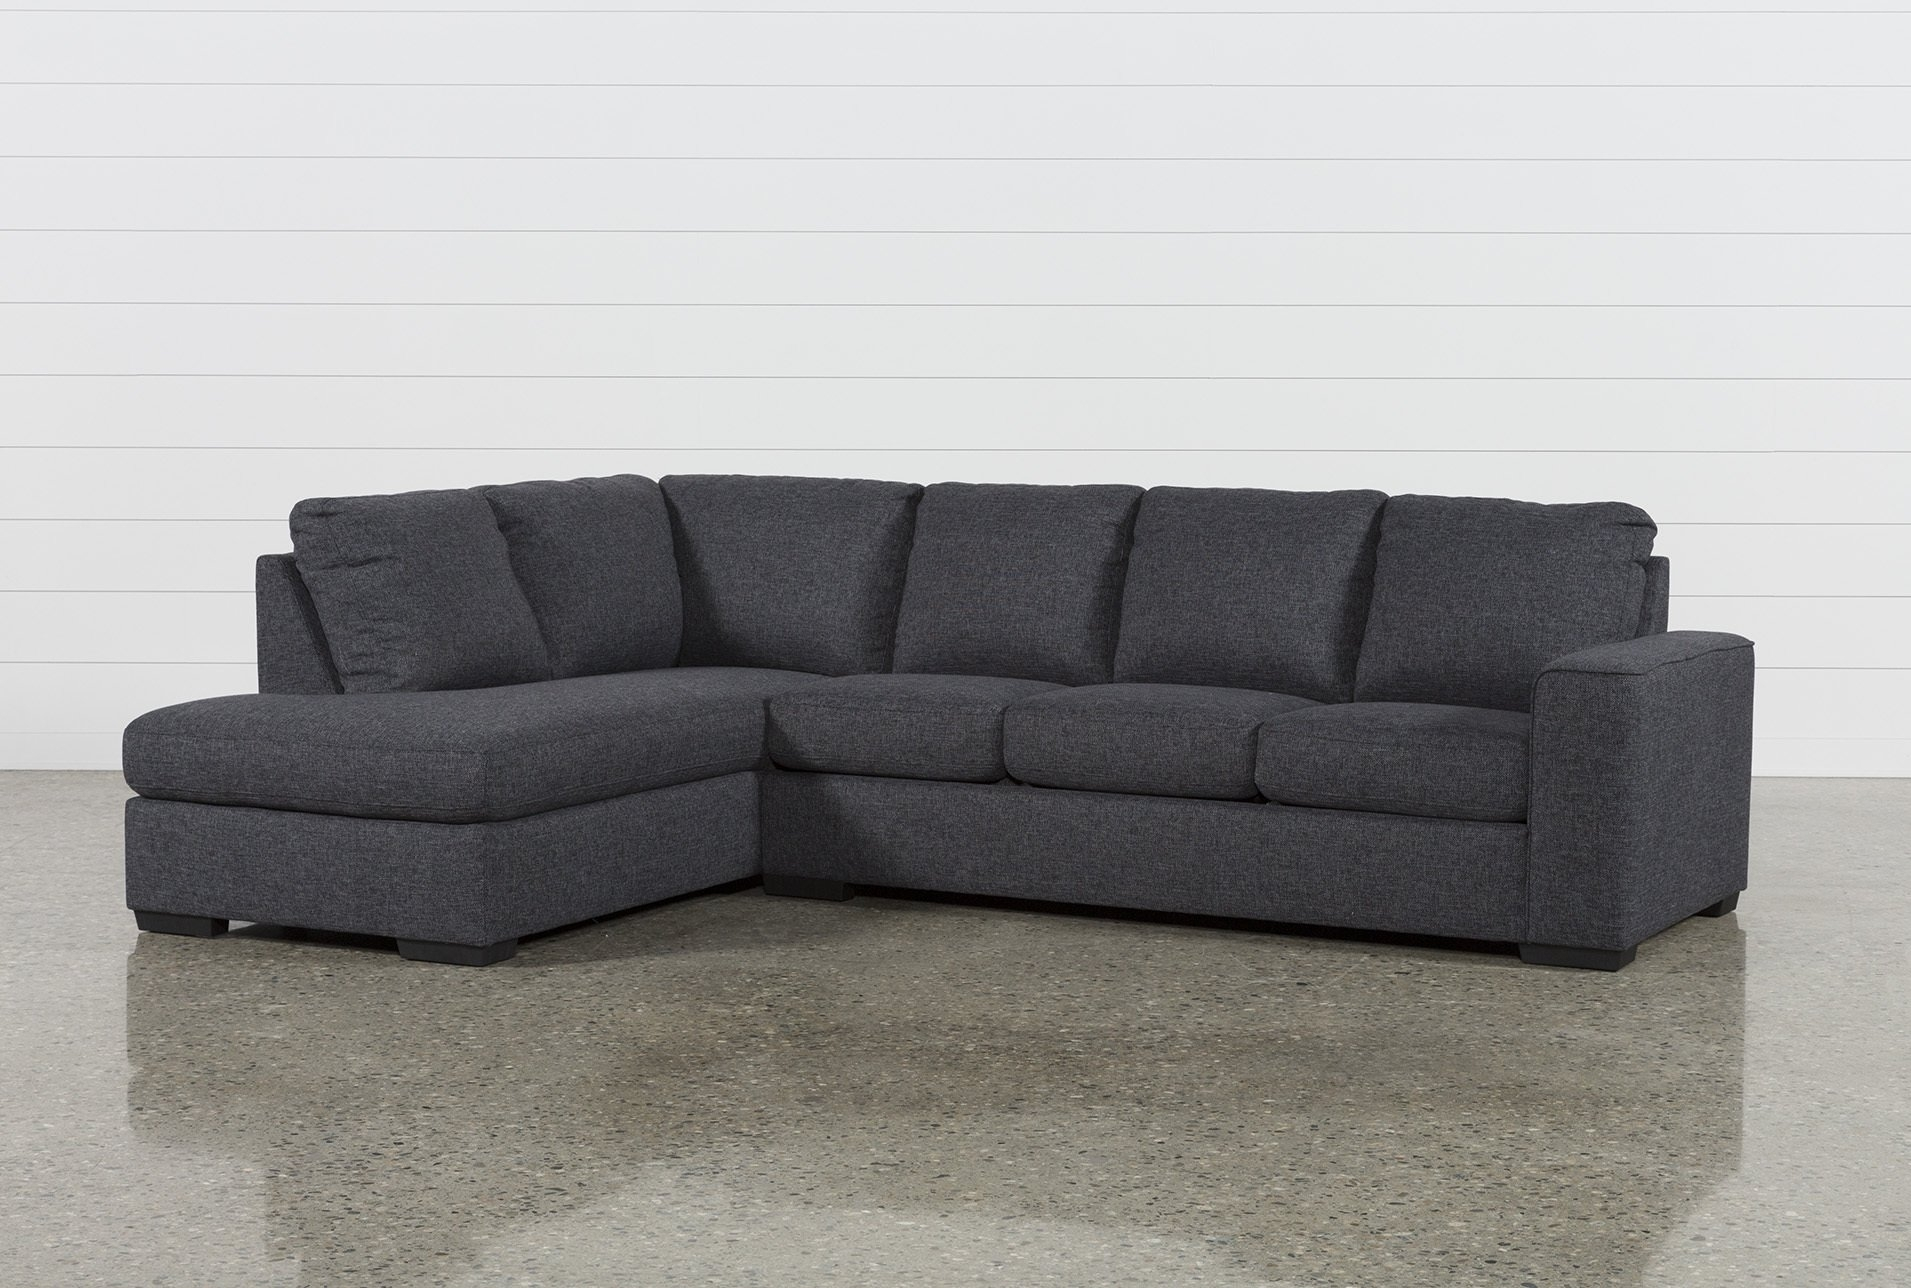 Lucy Dark Grey 2 Piece Sectional W/laf Chaise | Dark Grey And Products for Aspen 2 Piece Sectionals With Laf Chaise (Image 22 of 30)